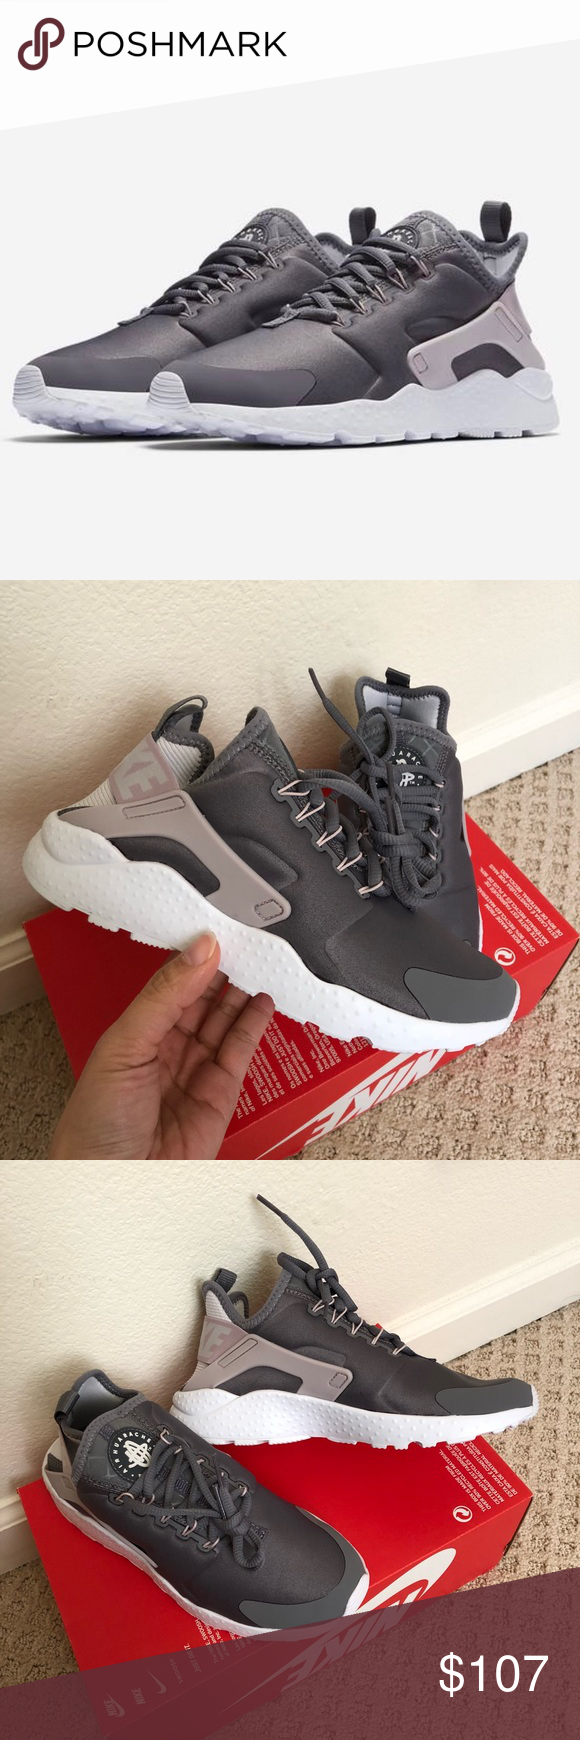 83be3570d14c 🌧New🌧 NIKE Air Huarache Run Ultra ~ 9.5 brand new no lid size 9.5 gunsmoke  vast grey comes from smoke free home 100% authentic A180000062 Nike Shoes  ...